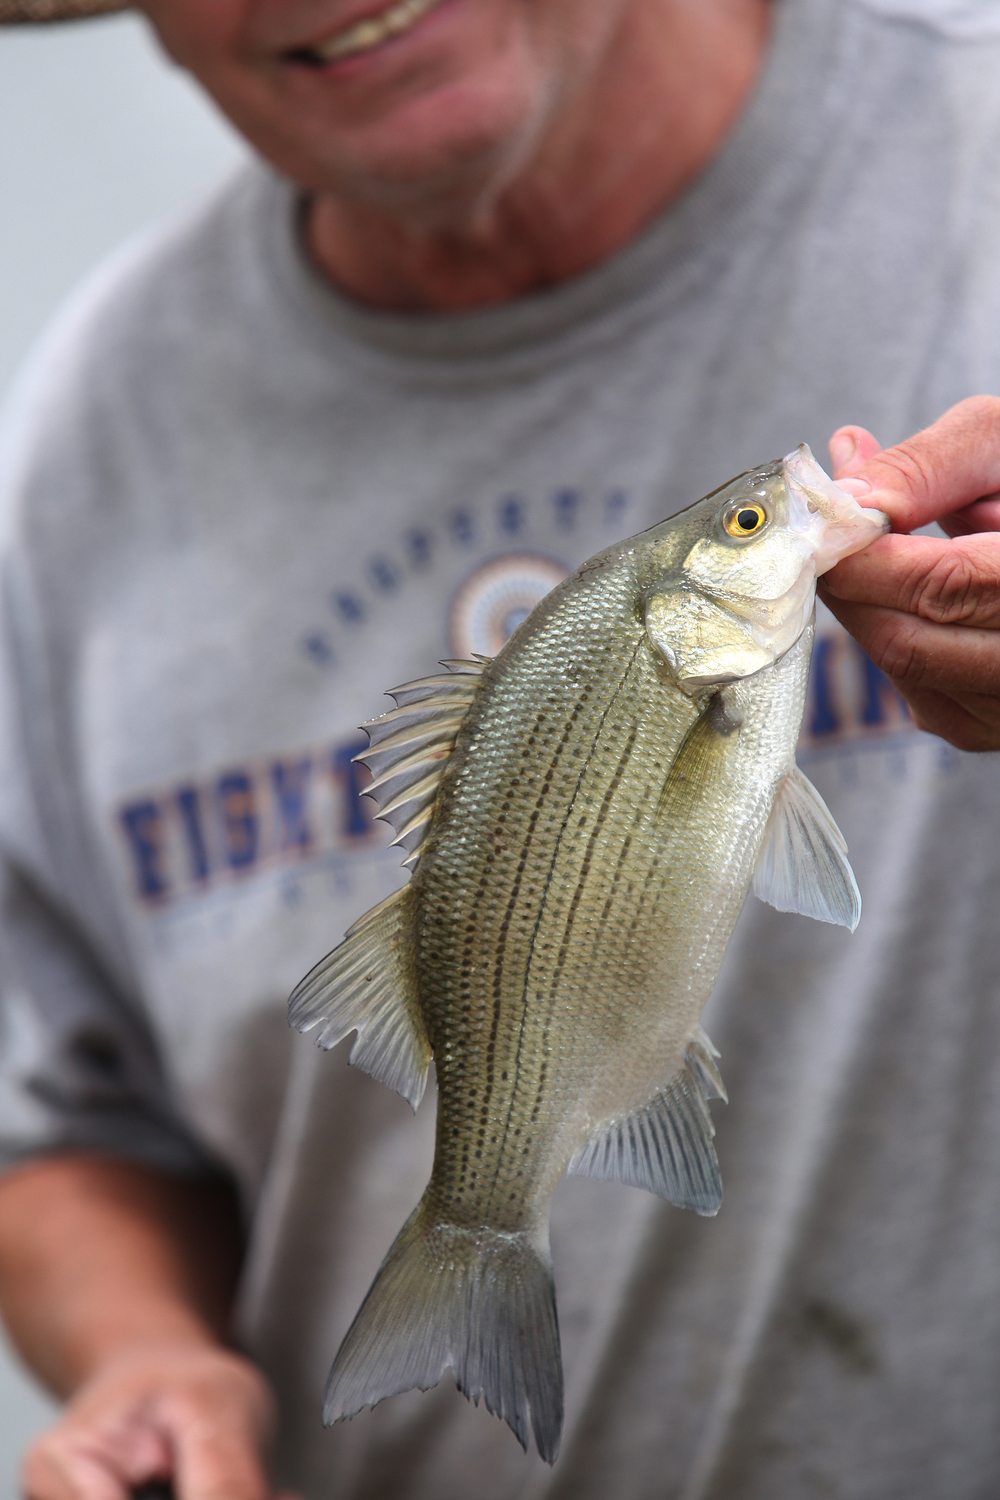 Jacksonville angler Steve Sherrill shows off a White Bass he caught while fishing from the flooded boat ramp of the Naples Boat Club north of downtown Thursday afternoon. David Spencer/The State Journal-Register